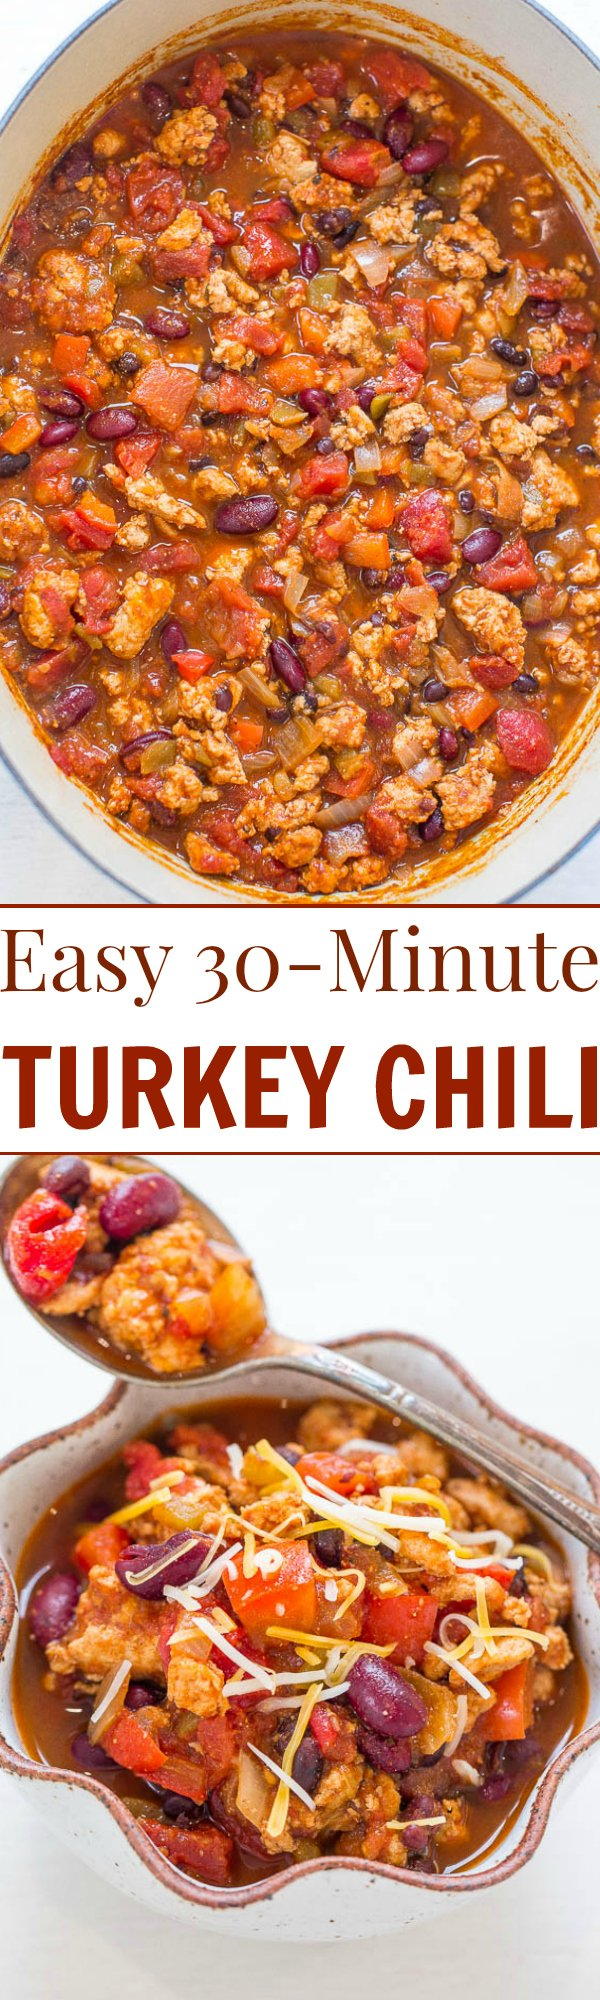 The BEST Healthy Turkey Chili— This easy turkey chili recipe comes together in just 30 minutes! It's packed with flavor and is perfect for busy weeknight dinners.